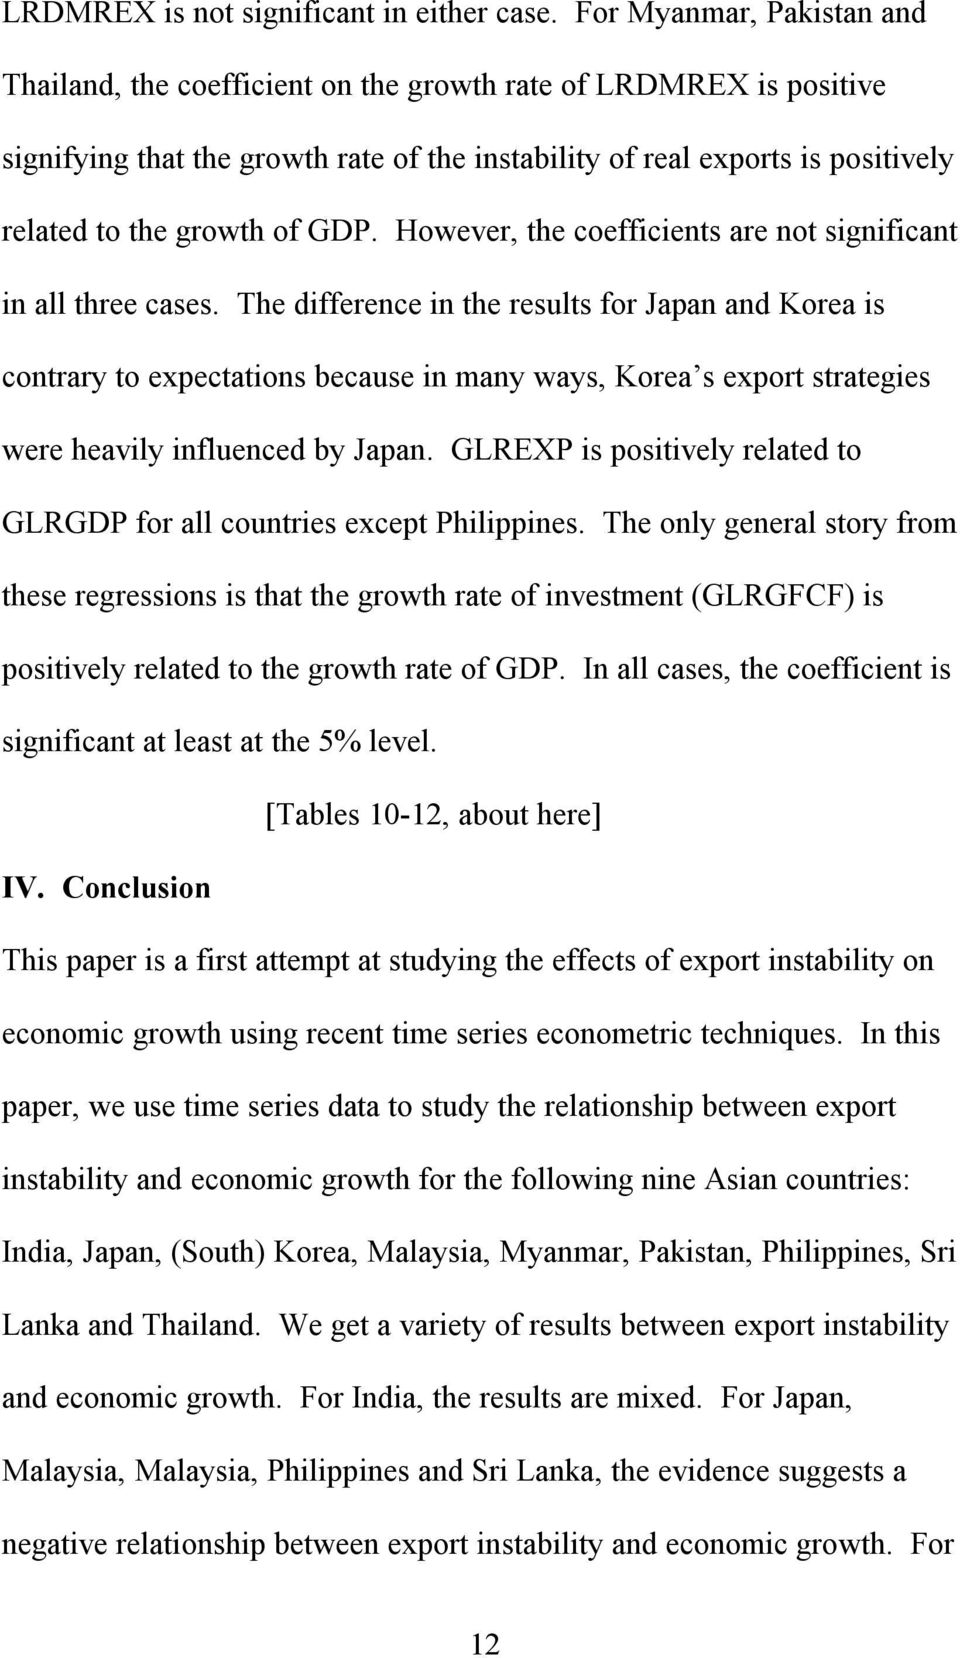 GDP. However, the coefficients are not significant in all three cases.